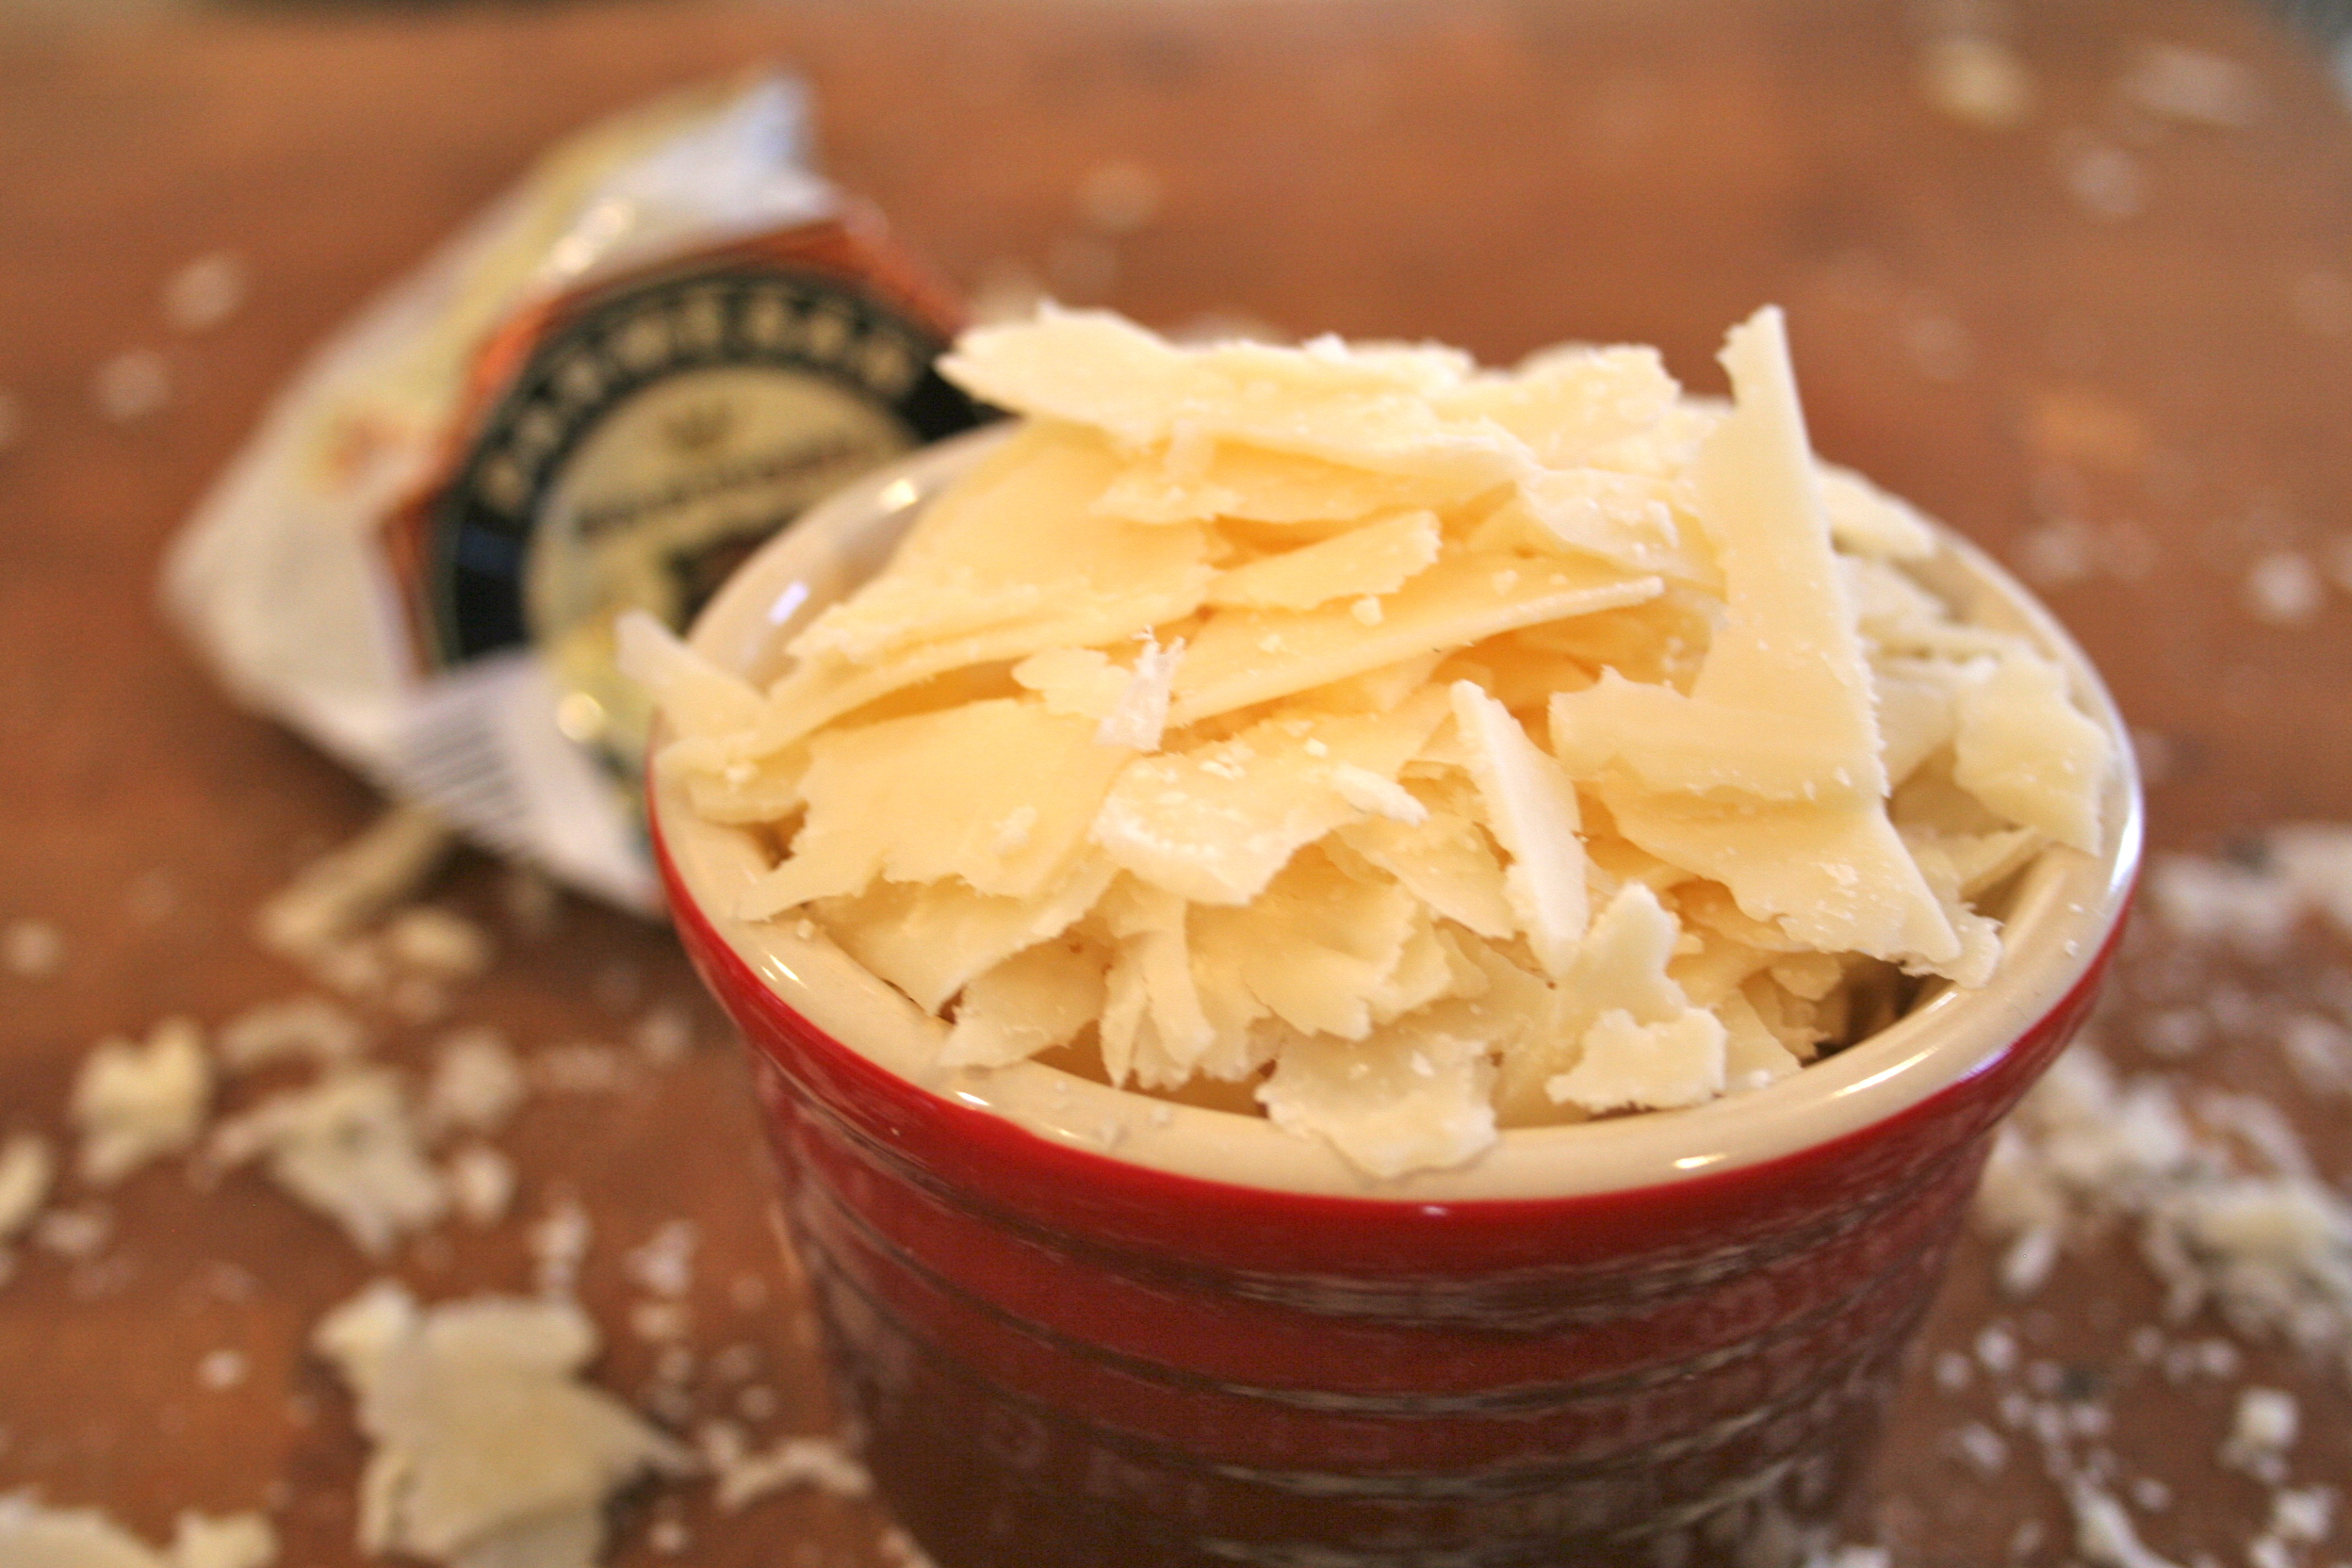 Shaved parmesan cheese